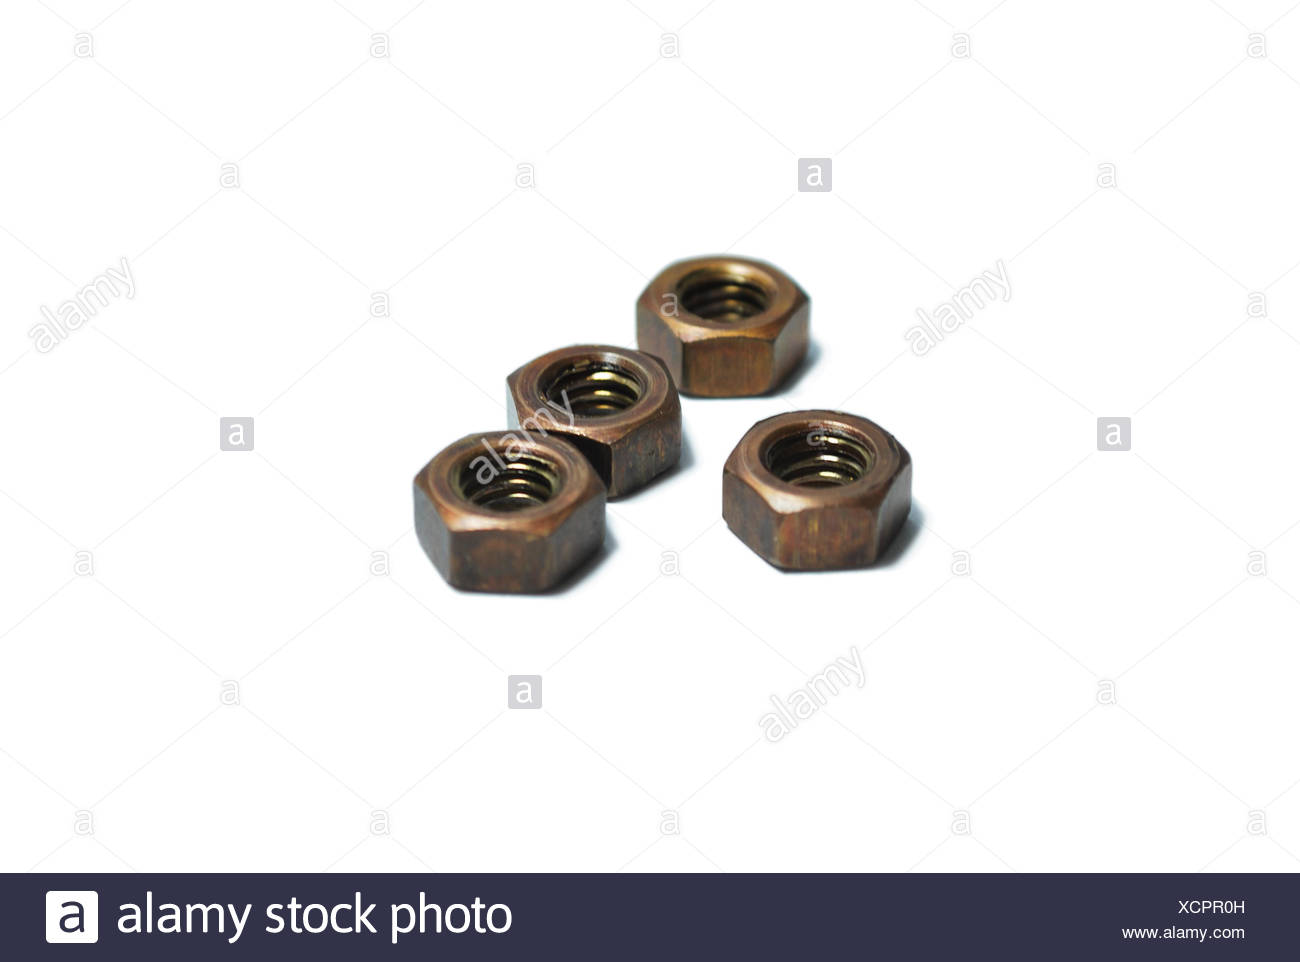 A group of fasteners isolated on white background - Stock Image